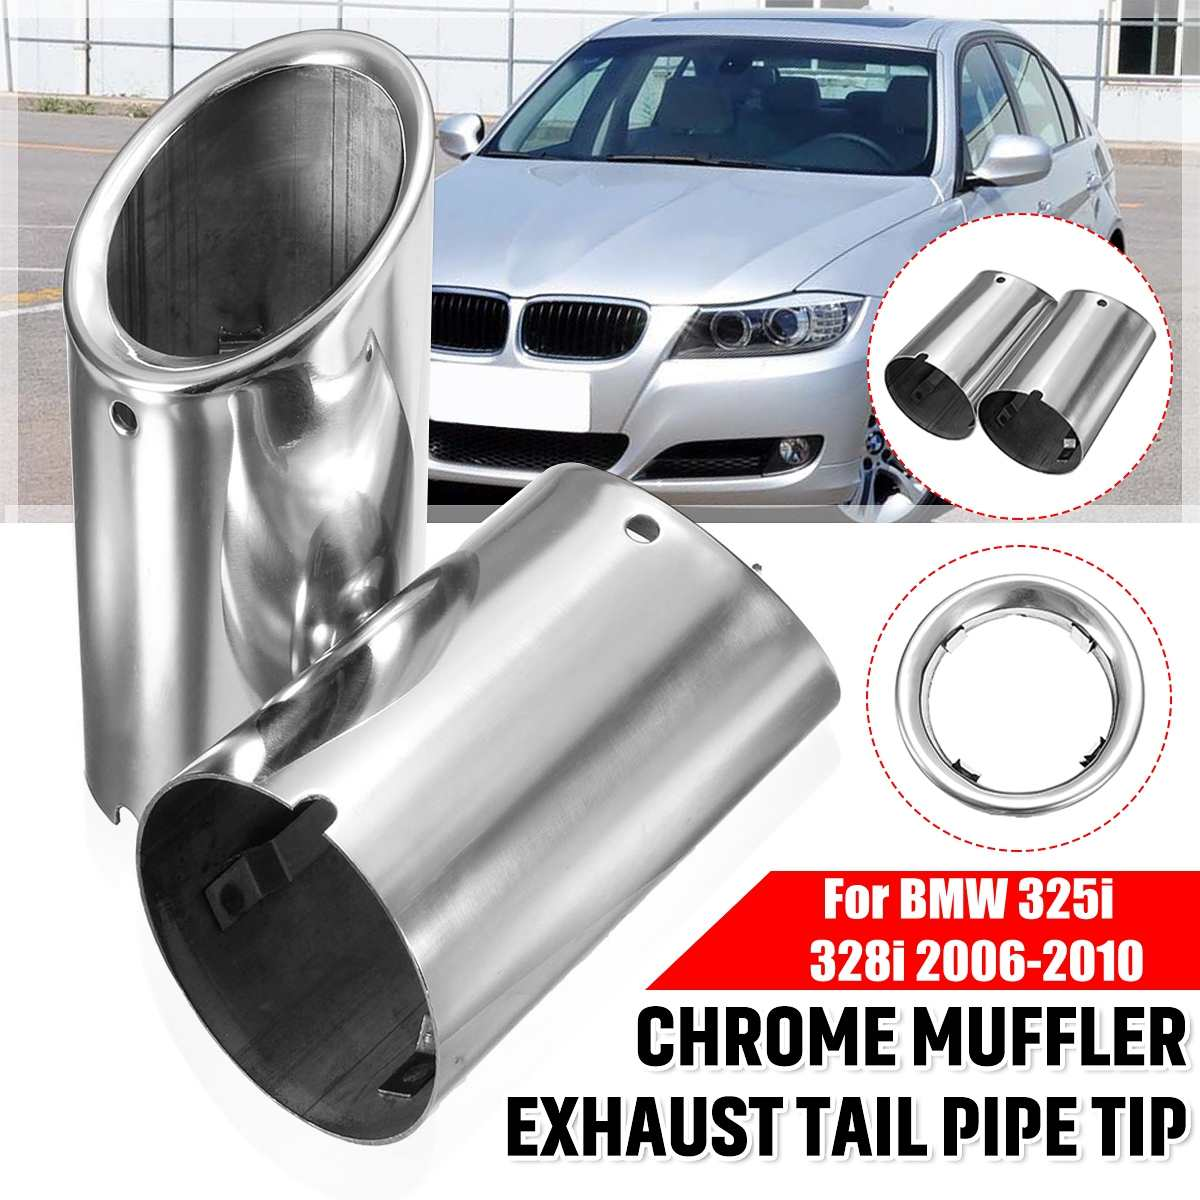 Exhaust tailpipe tip Stainless Steel BMW M3 Style For BMW E36 E46 dual 64mm 2.5/""